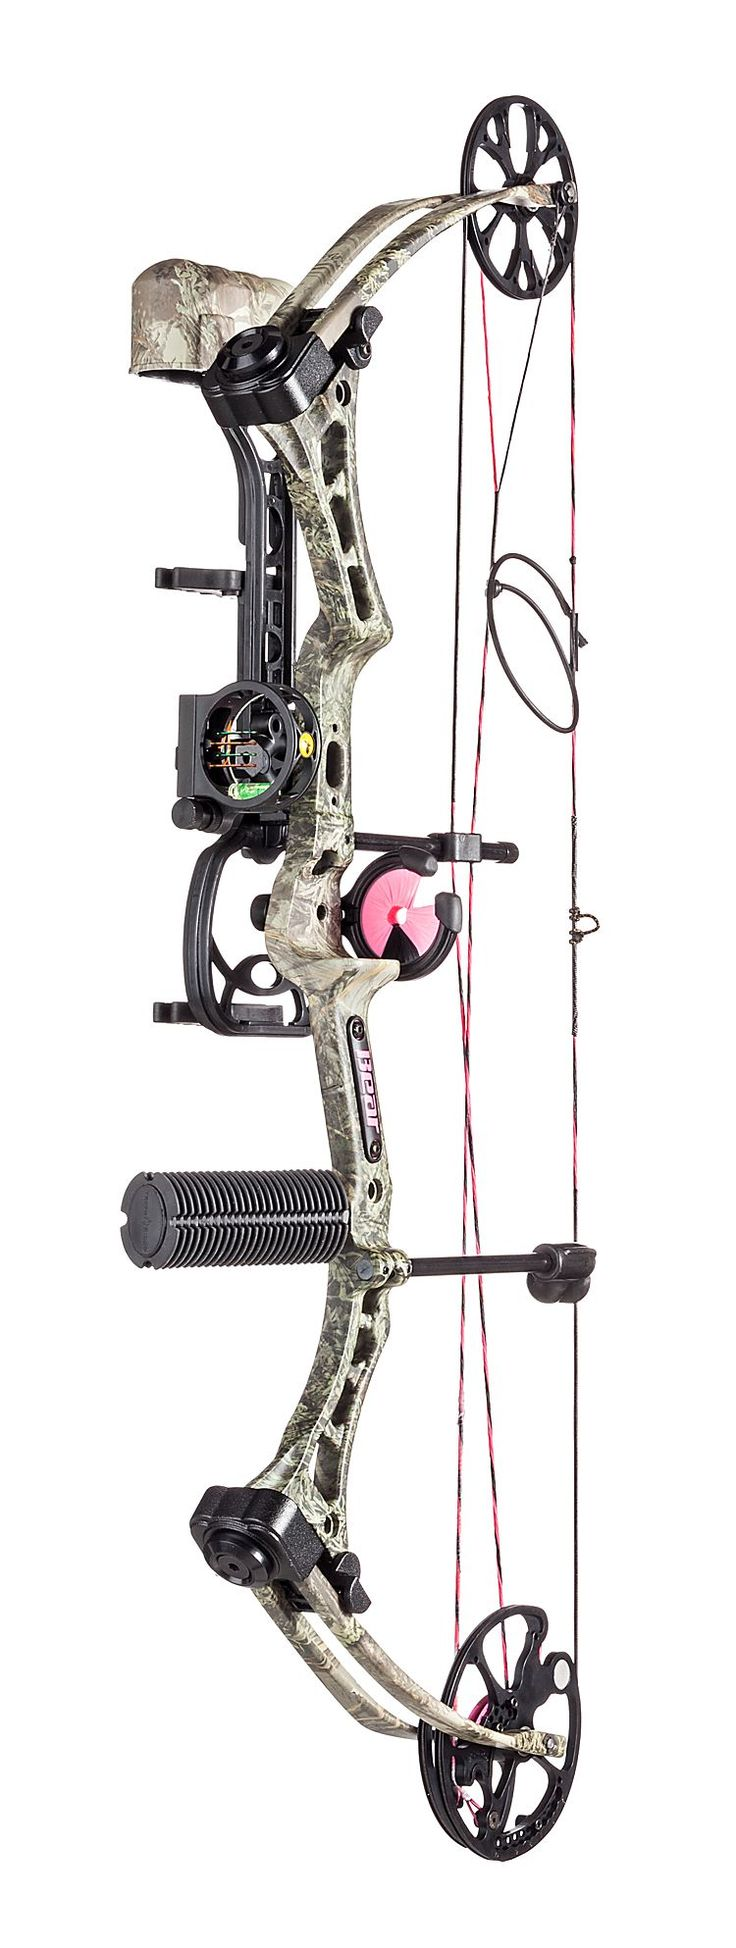 Bear Archery® Finesse RTH Compound Bow. Yes yes for the love of hunting YES I want this bow.